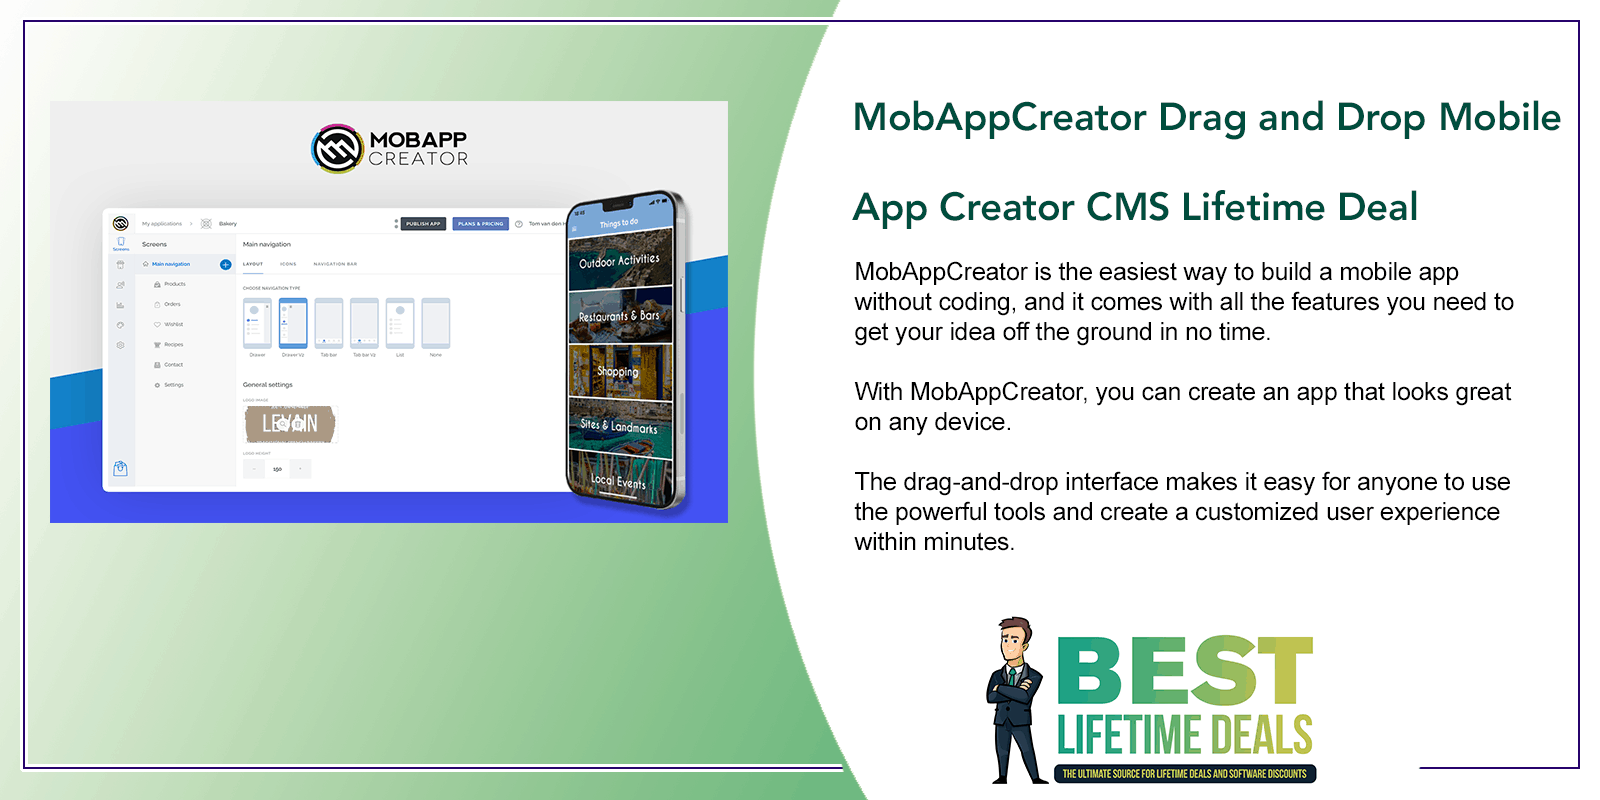 MobAppCreator Drag and Drop Mobile App Creator CMS Lifetime Featured Image